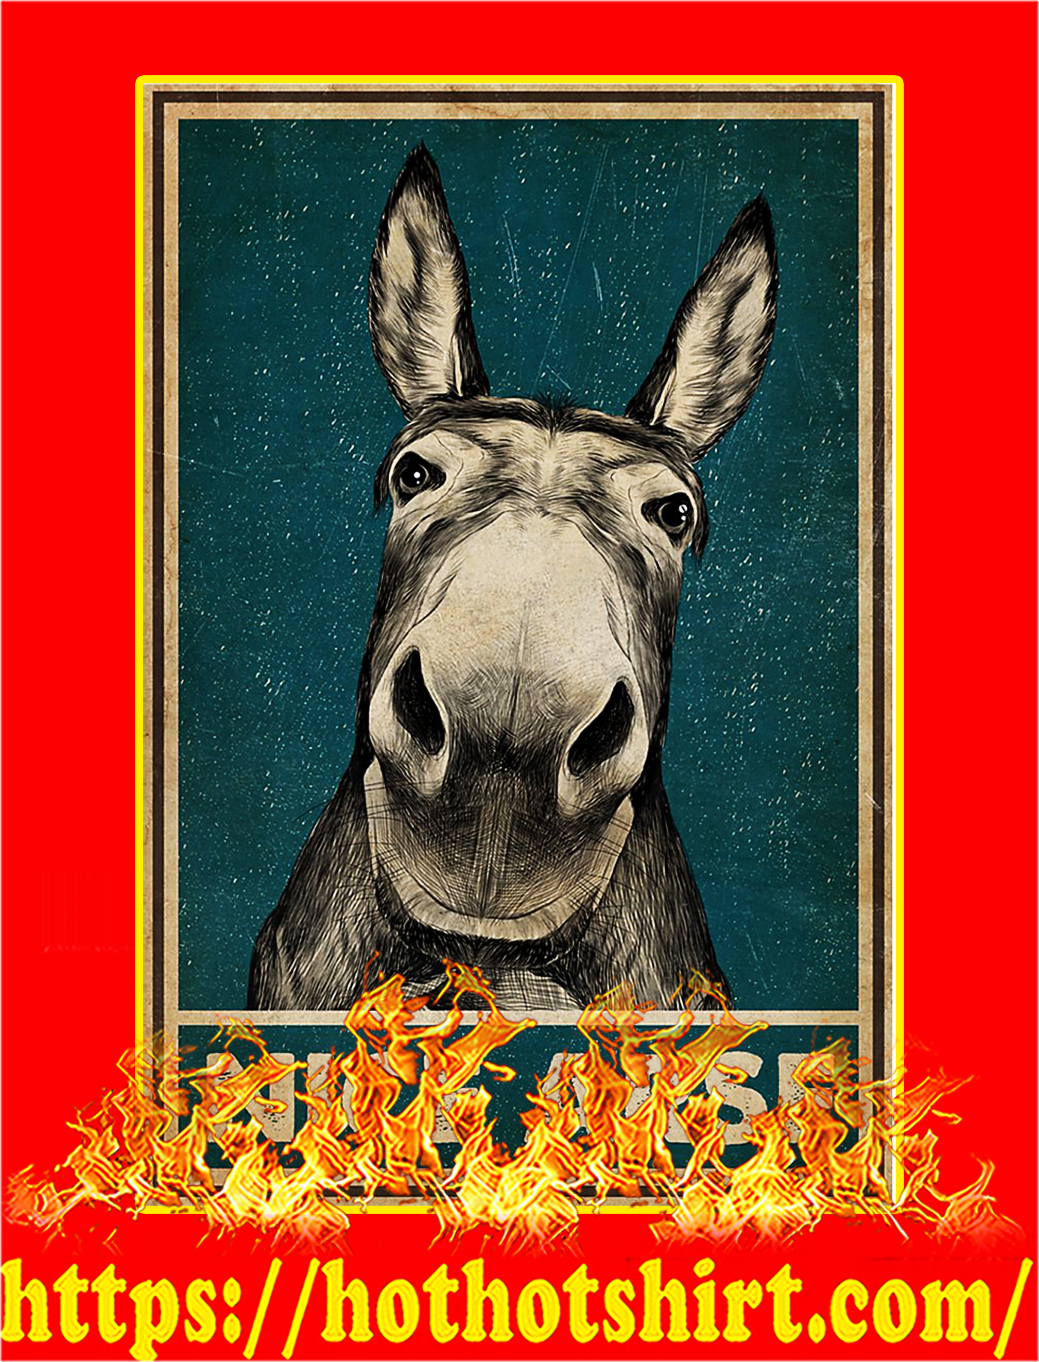 Donkey nice arse poster - A3